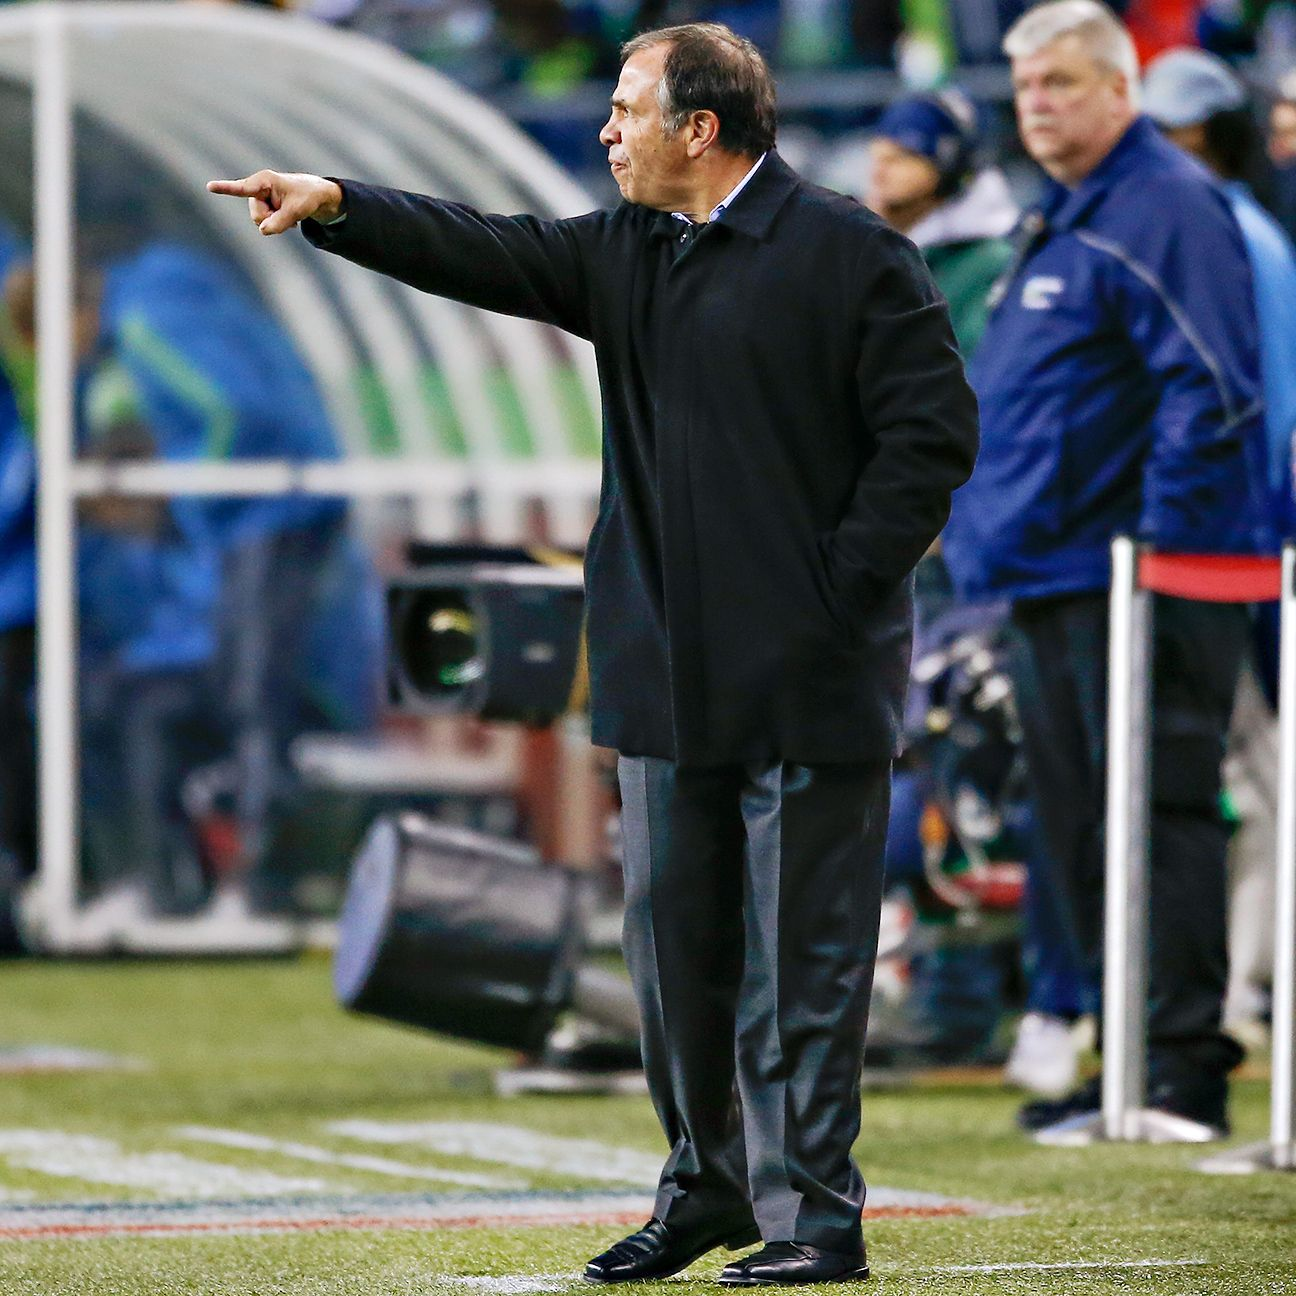 After doing enough to limit Seattle's potent attack, Galaxy head coach Bruce Arena must now try to keep New England's creative playmakers in check.